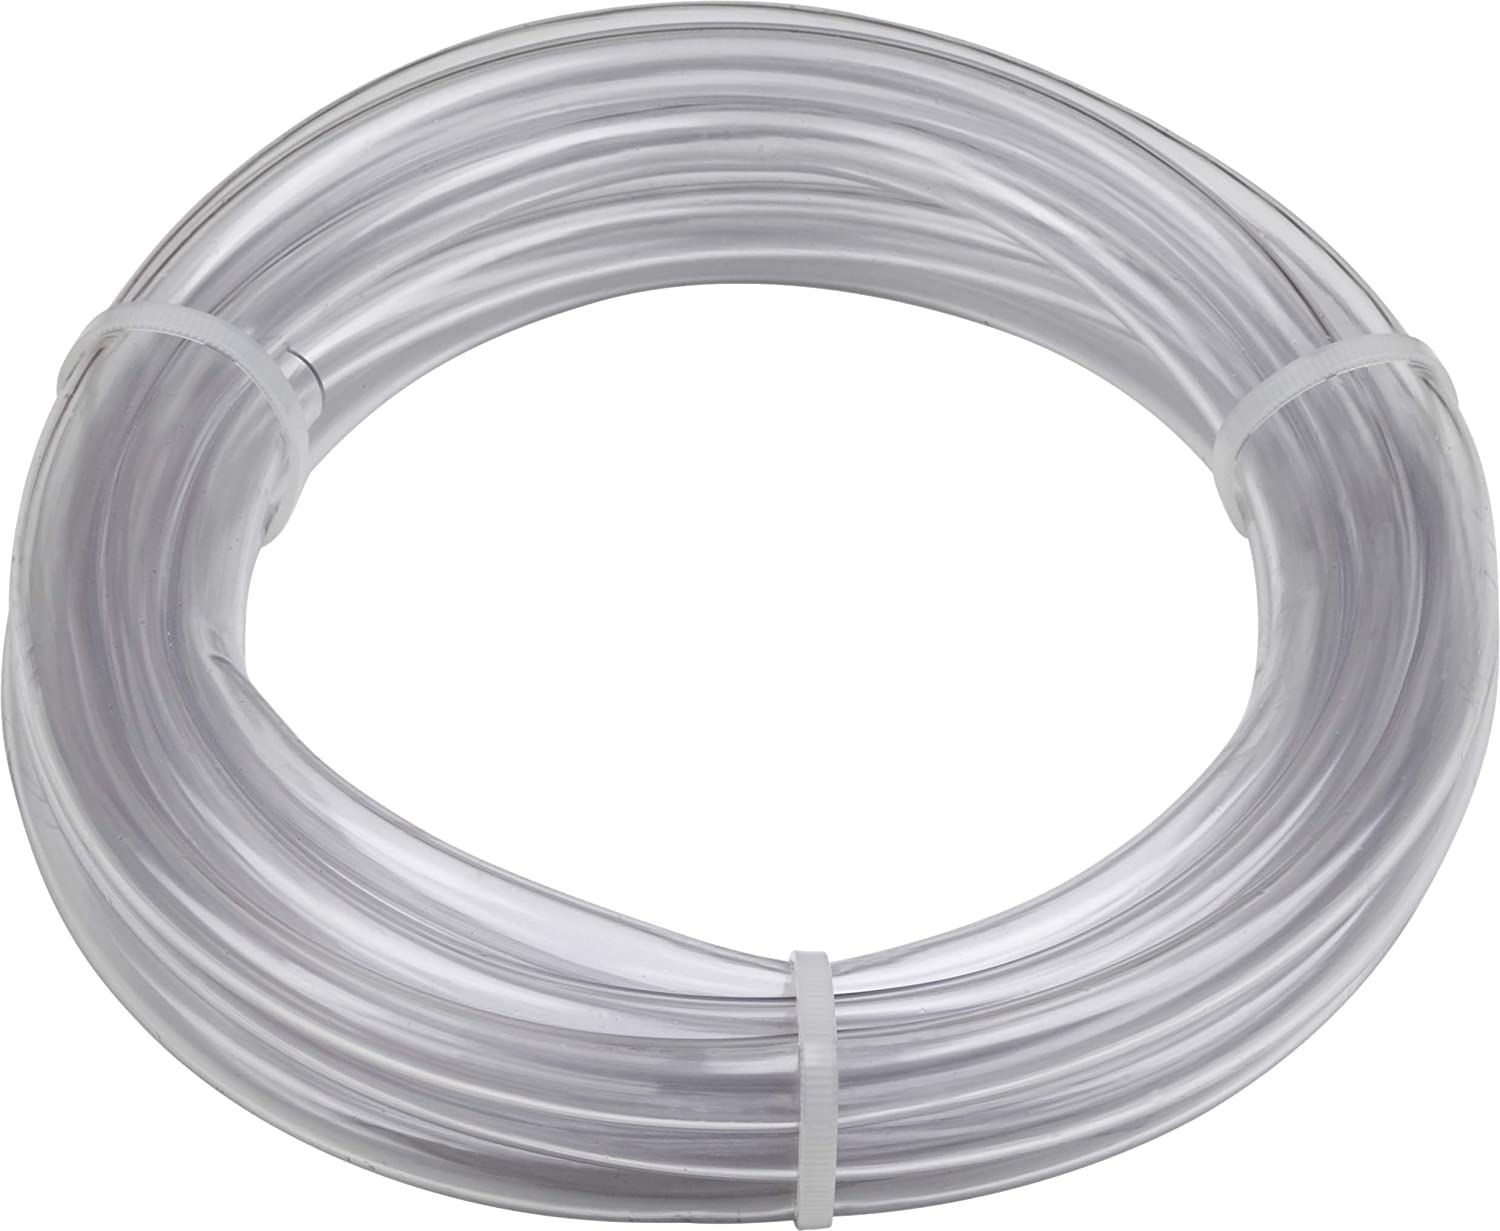 Meister PVC Hose Transparent Max 58% OFF – Insert for Trans Without Fabric Great interest